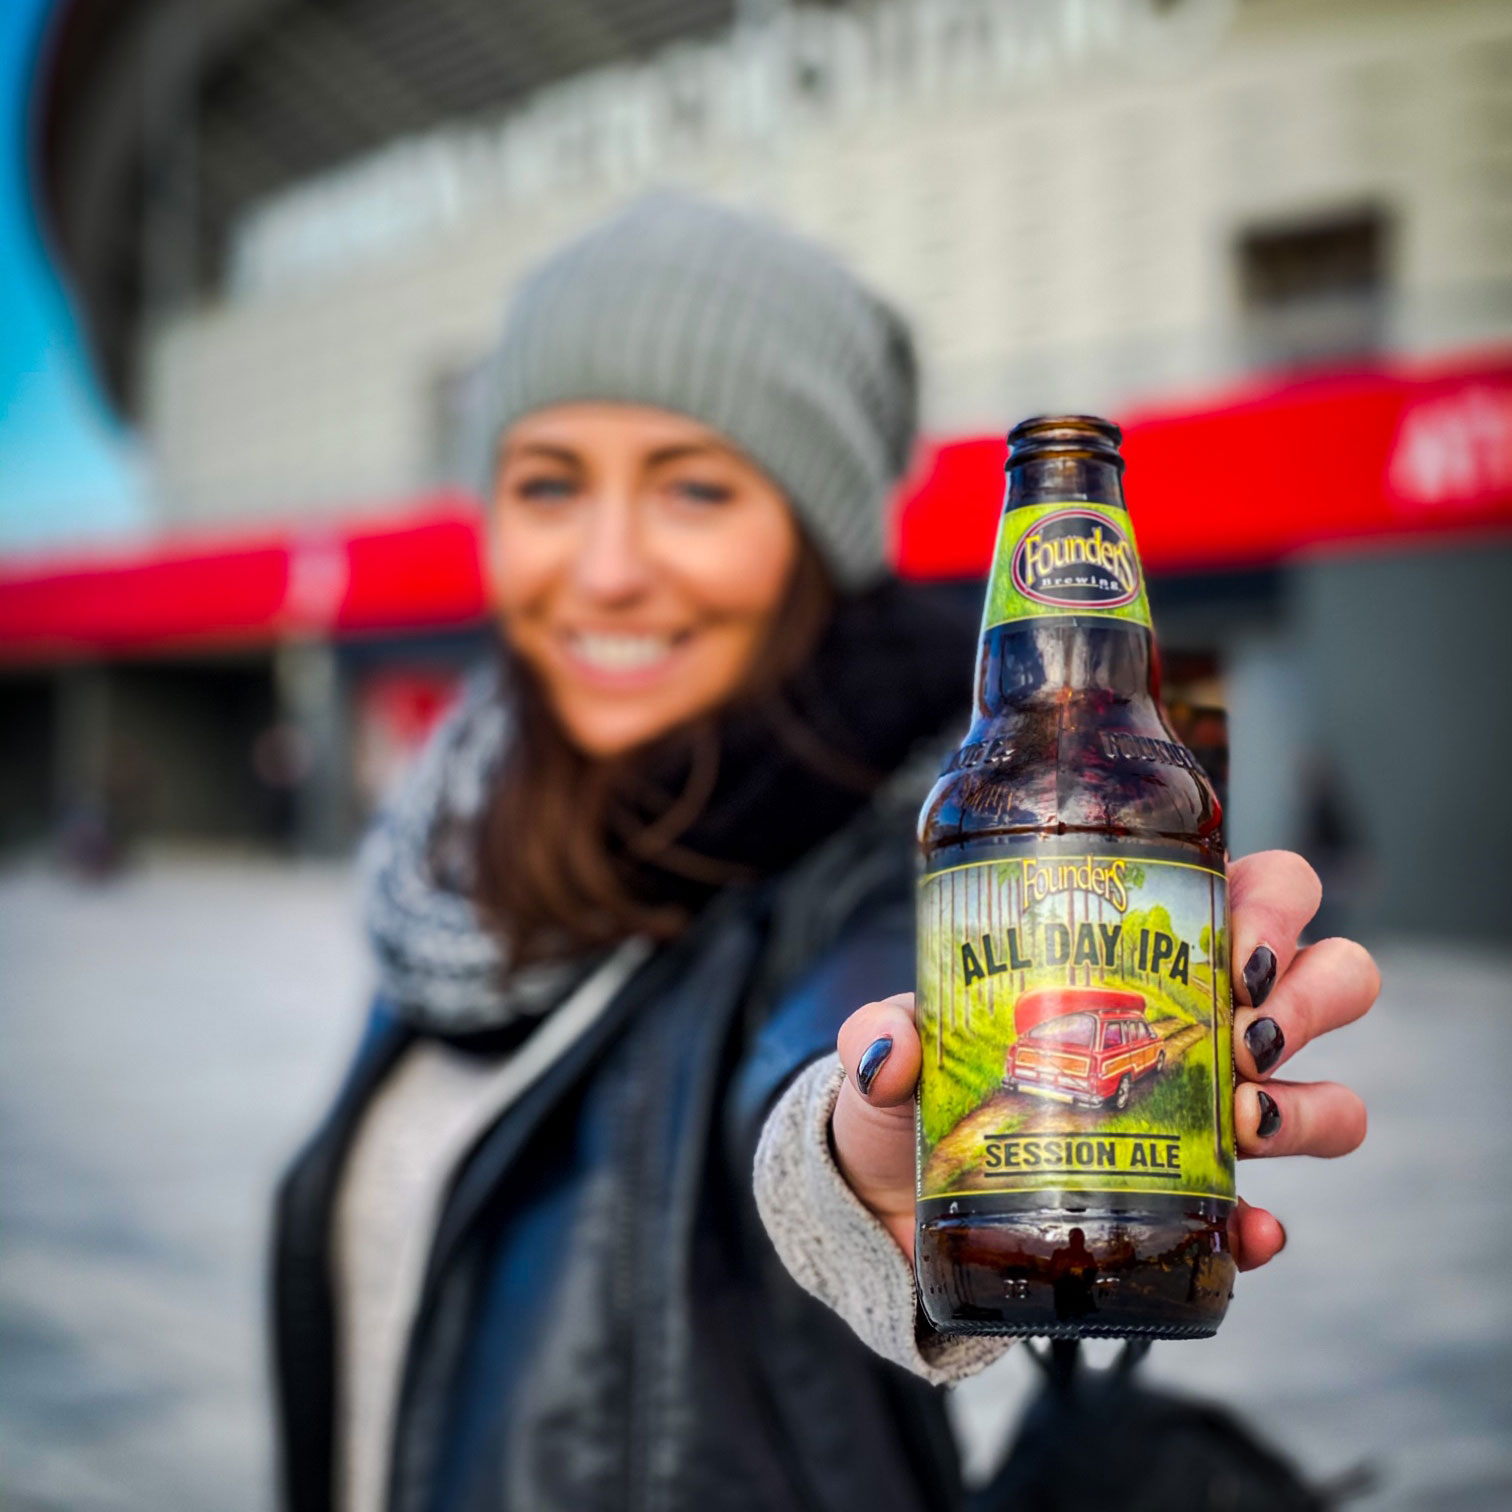 Woman holding bottle of Founders All Day IPA